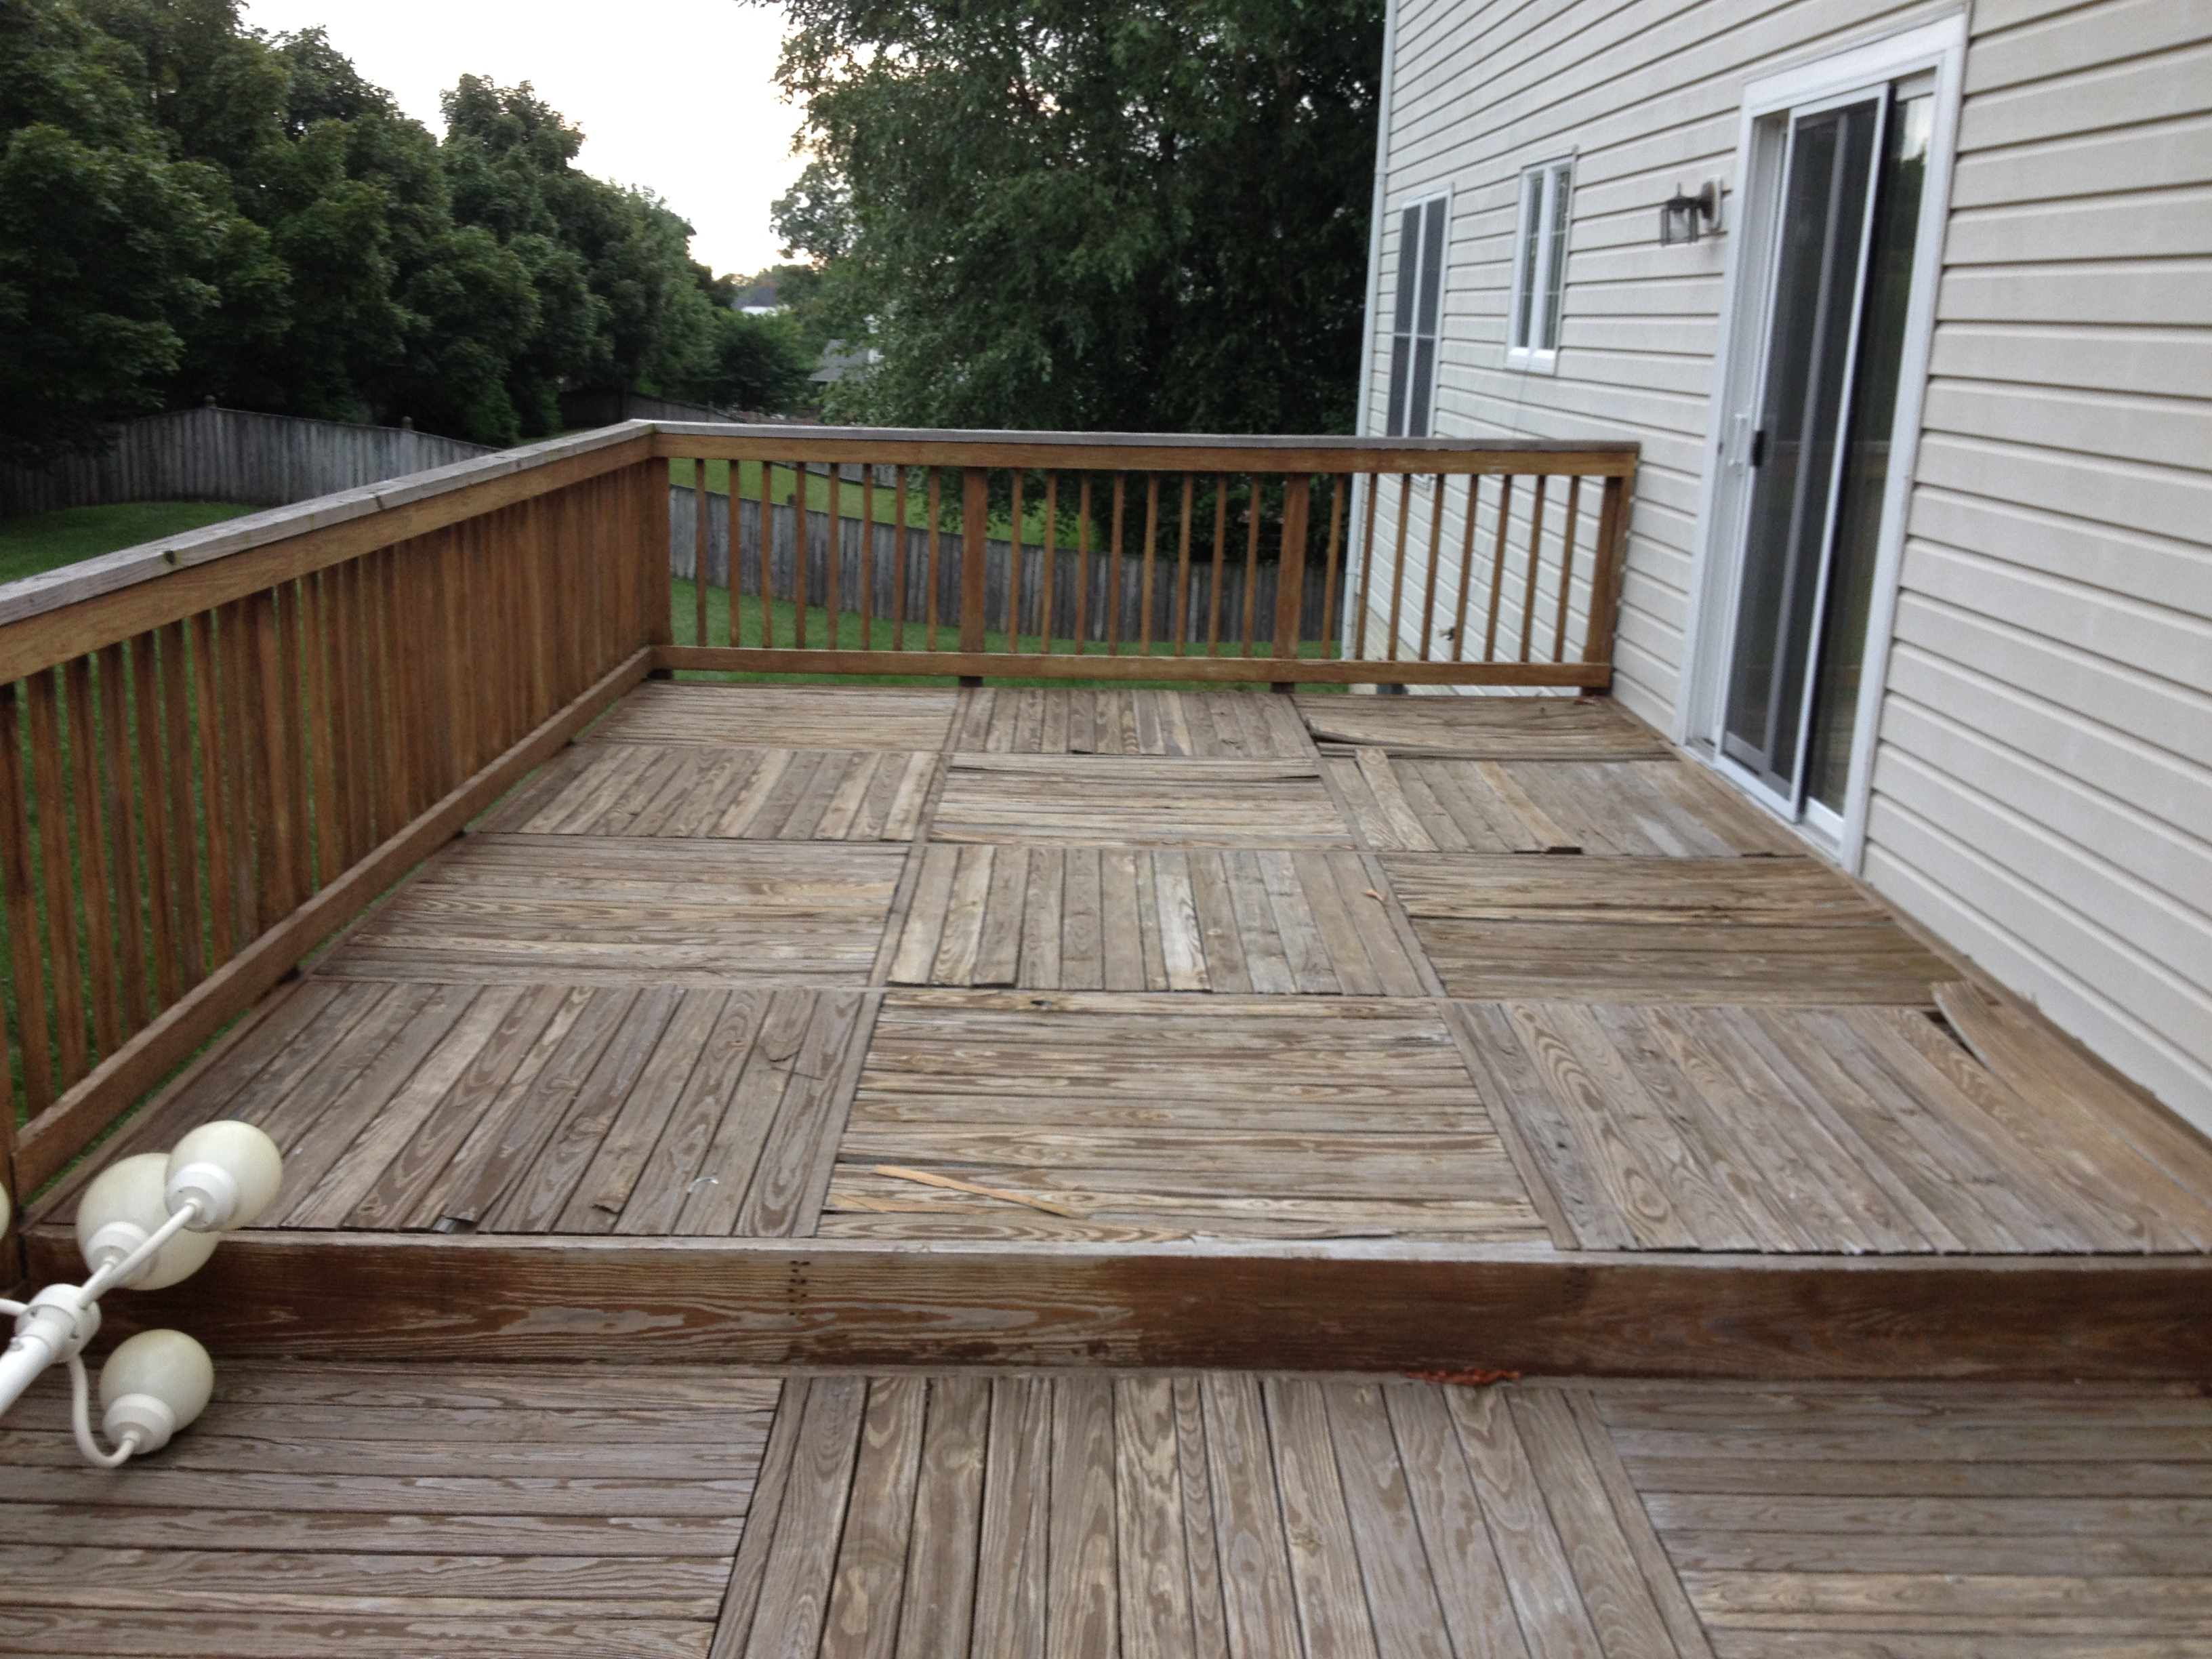 Once A Pressure Treated Pine Deck Reaches 15 Years Of Age It Starts To Show Is By Becoming Brittle Rough And Splintery